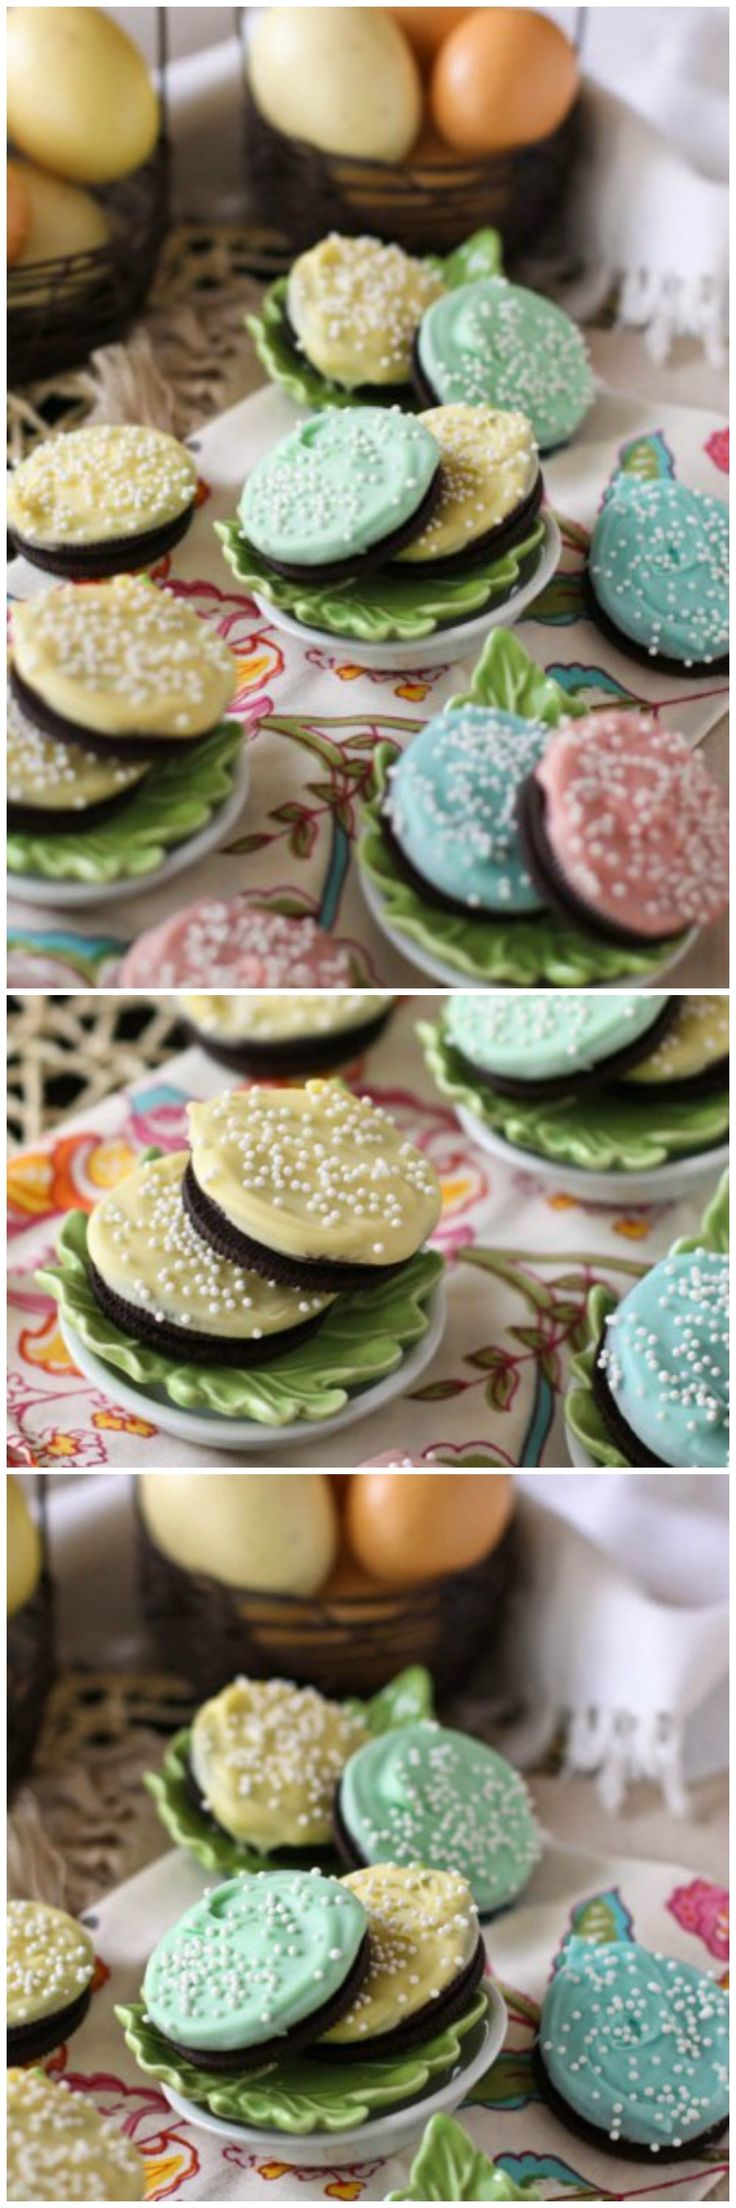 White Fudge Dipped Easter Oreos, so simple and festive :)